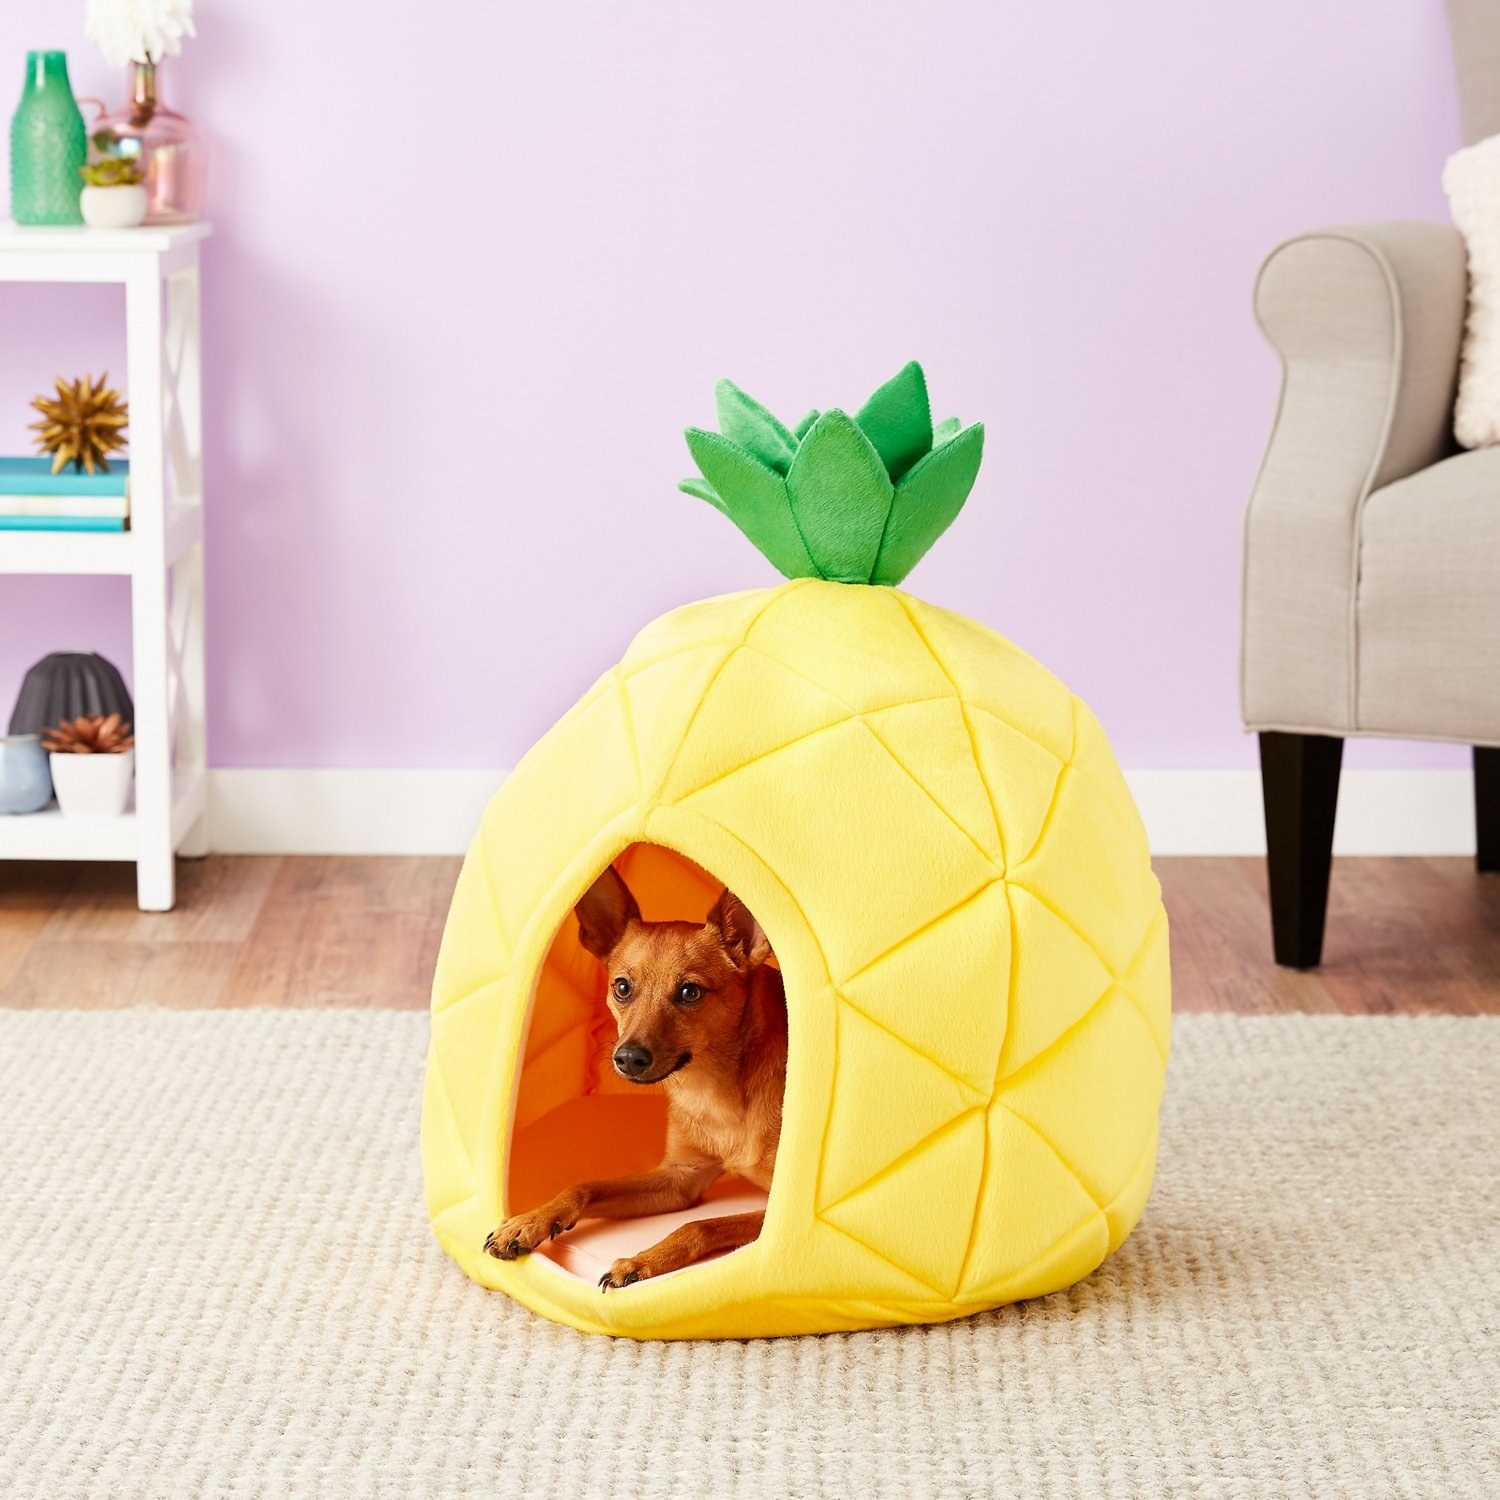 A dog lays inside the YML pineapple covered dog bed